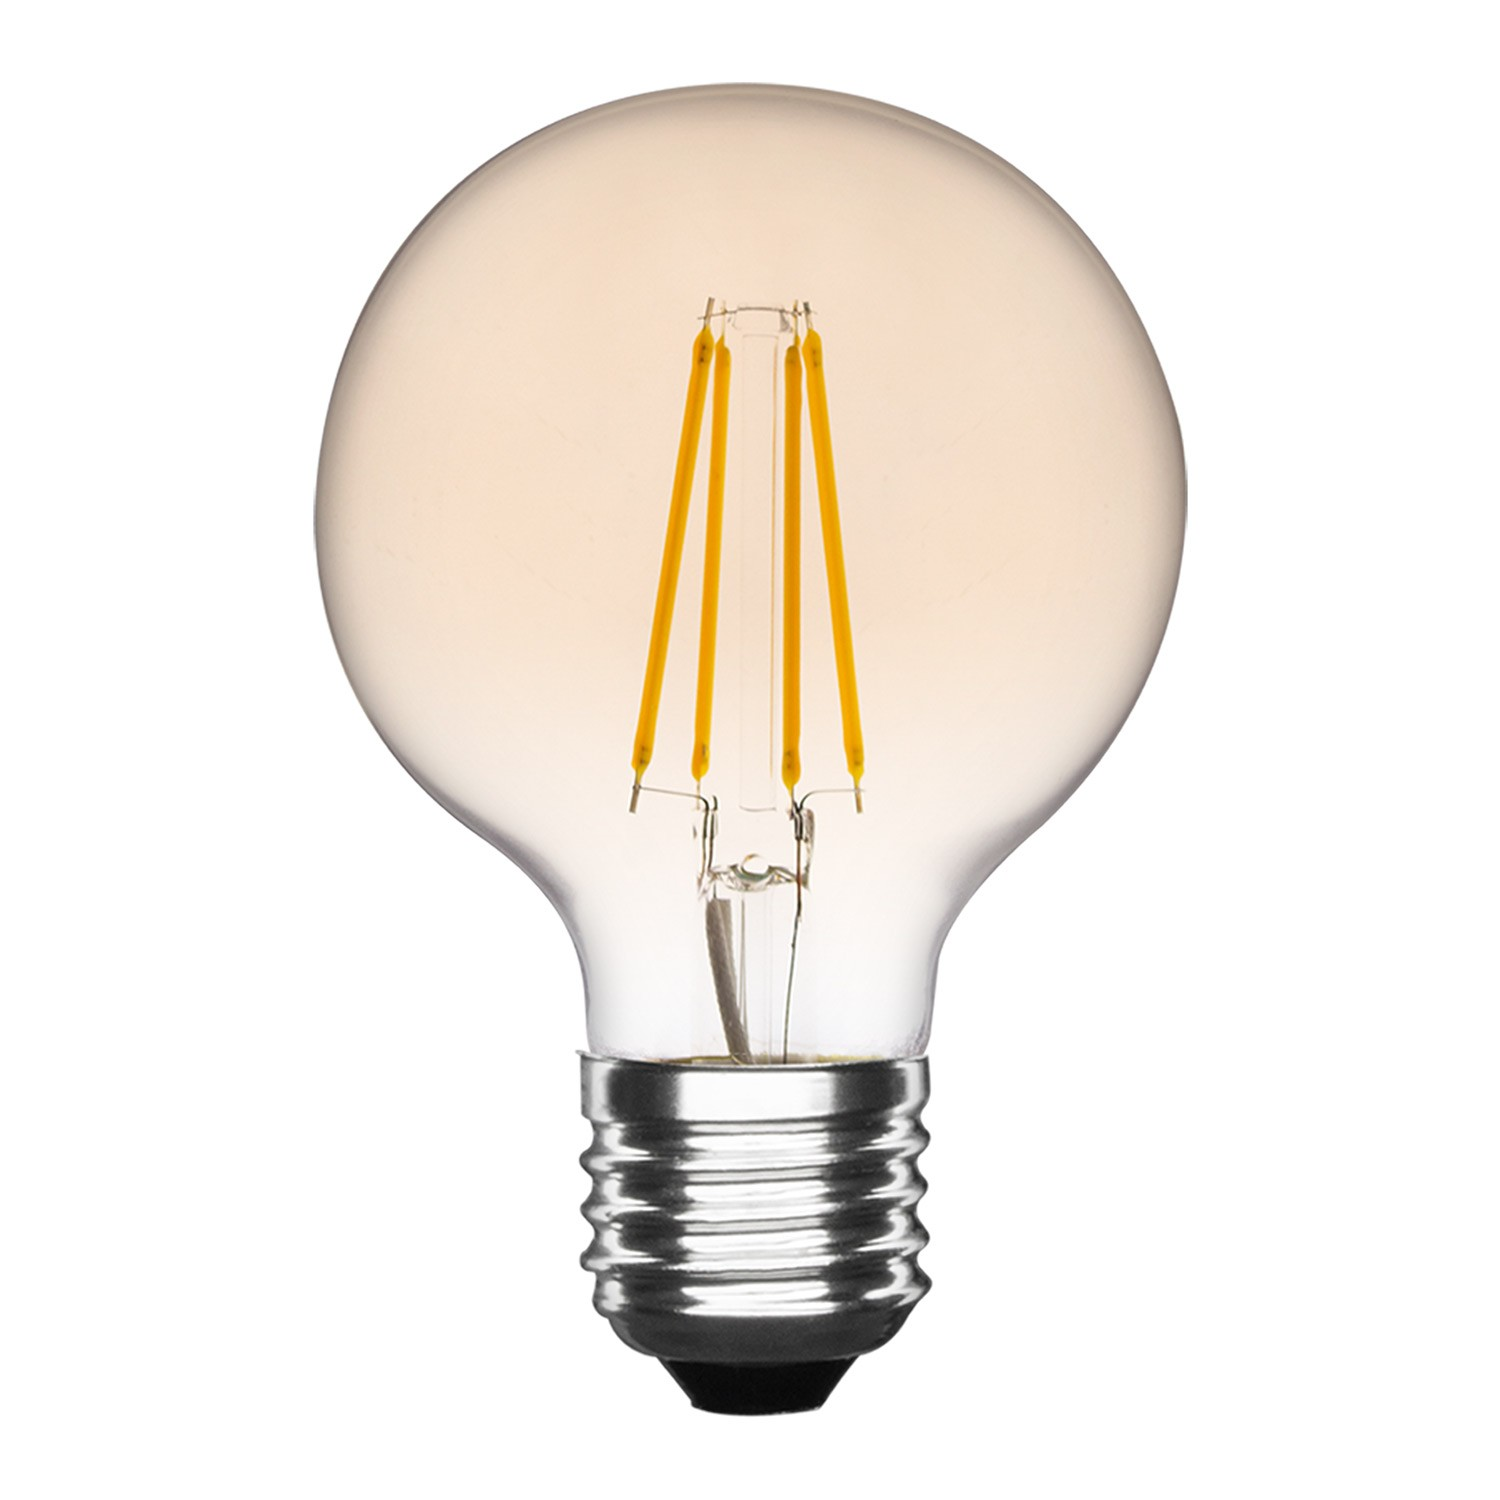 Gradient Glob Bulb, gallery image 1